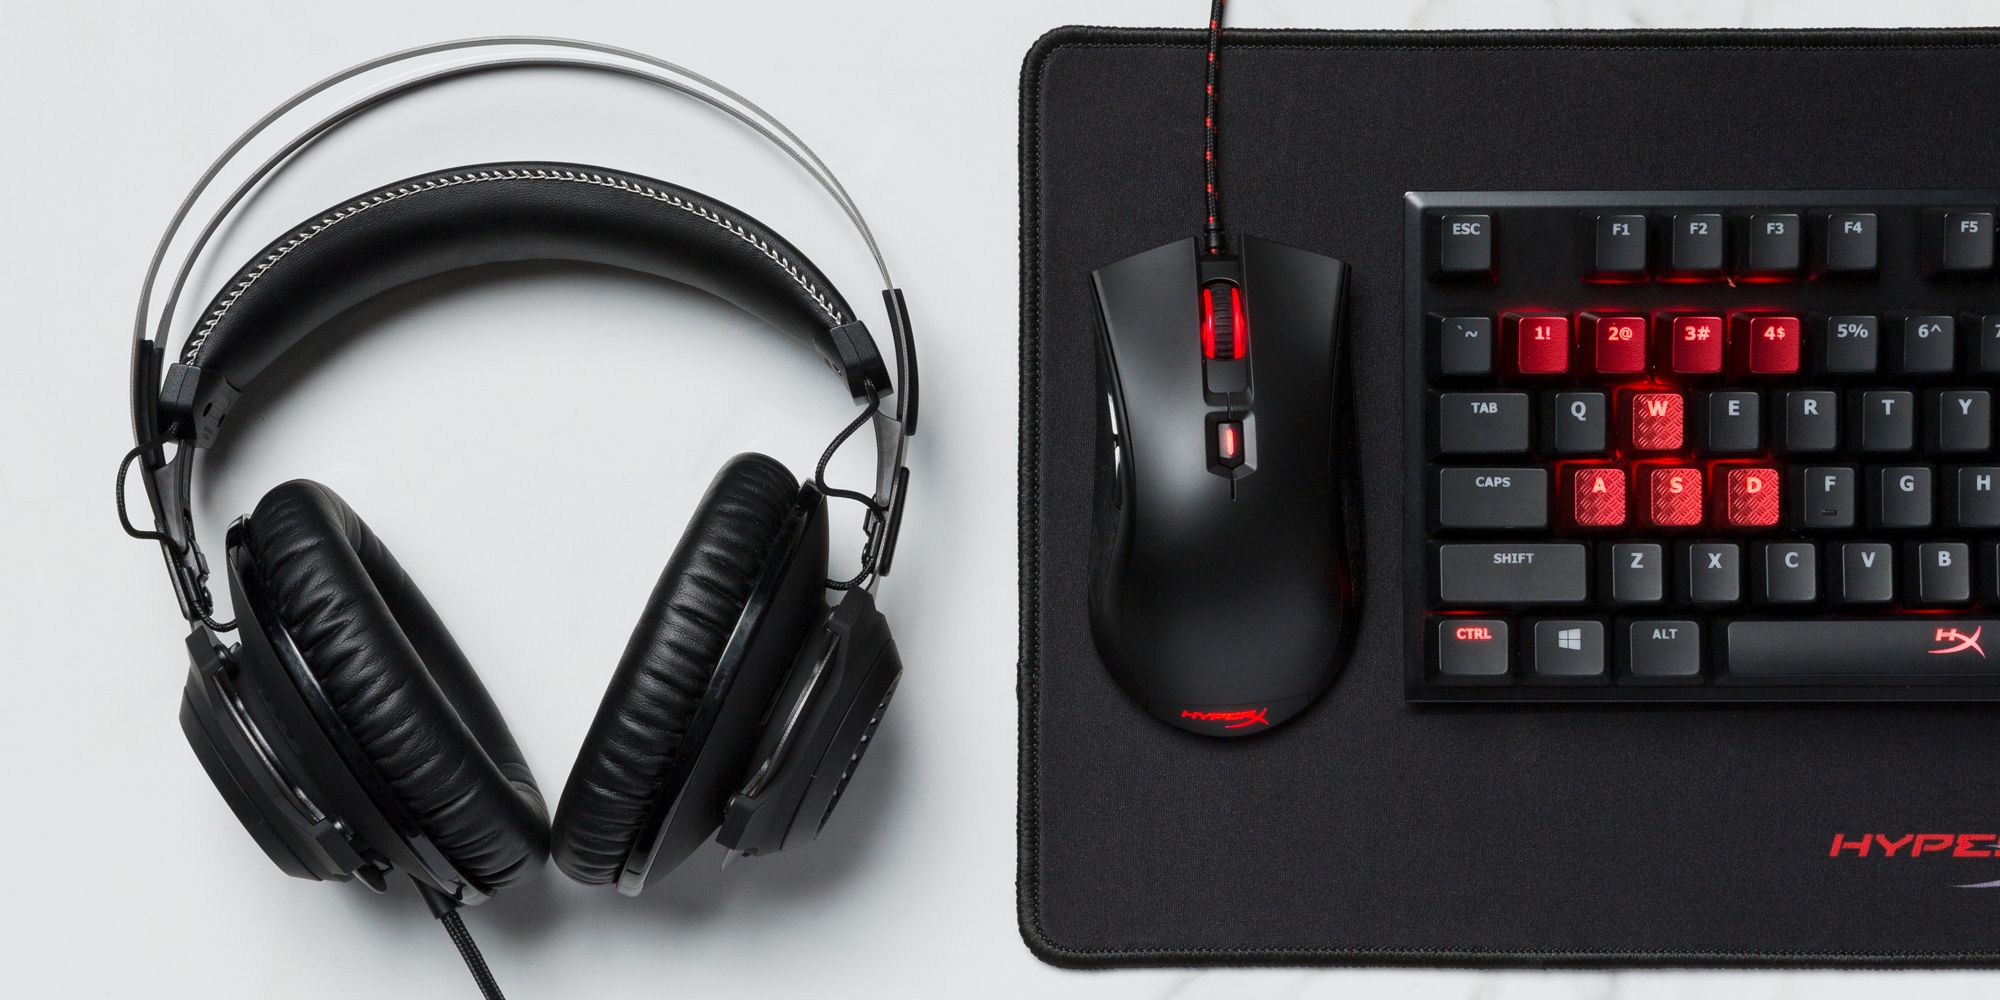 c3833223c9c Kingston's HyperX Cloud Revolver S Gaming Headset Review: Price & Sound  Make This A Great Buy for Gamers